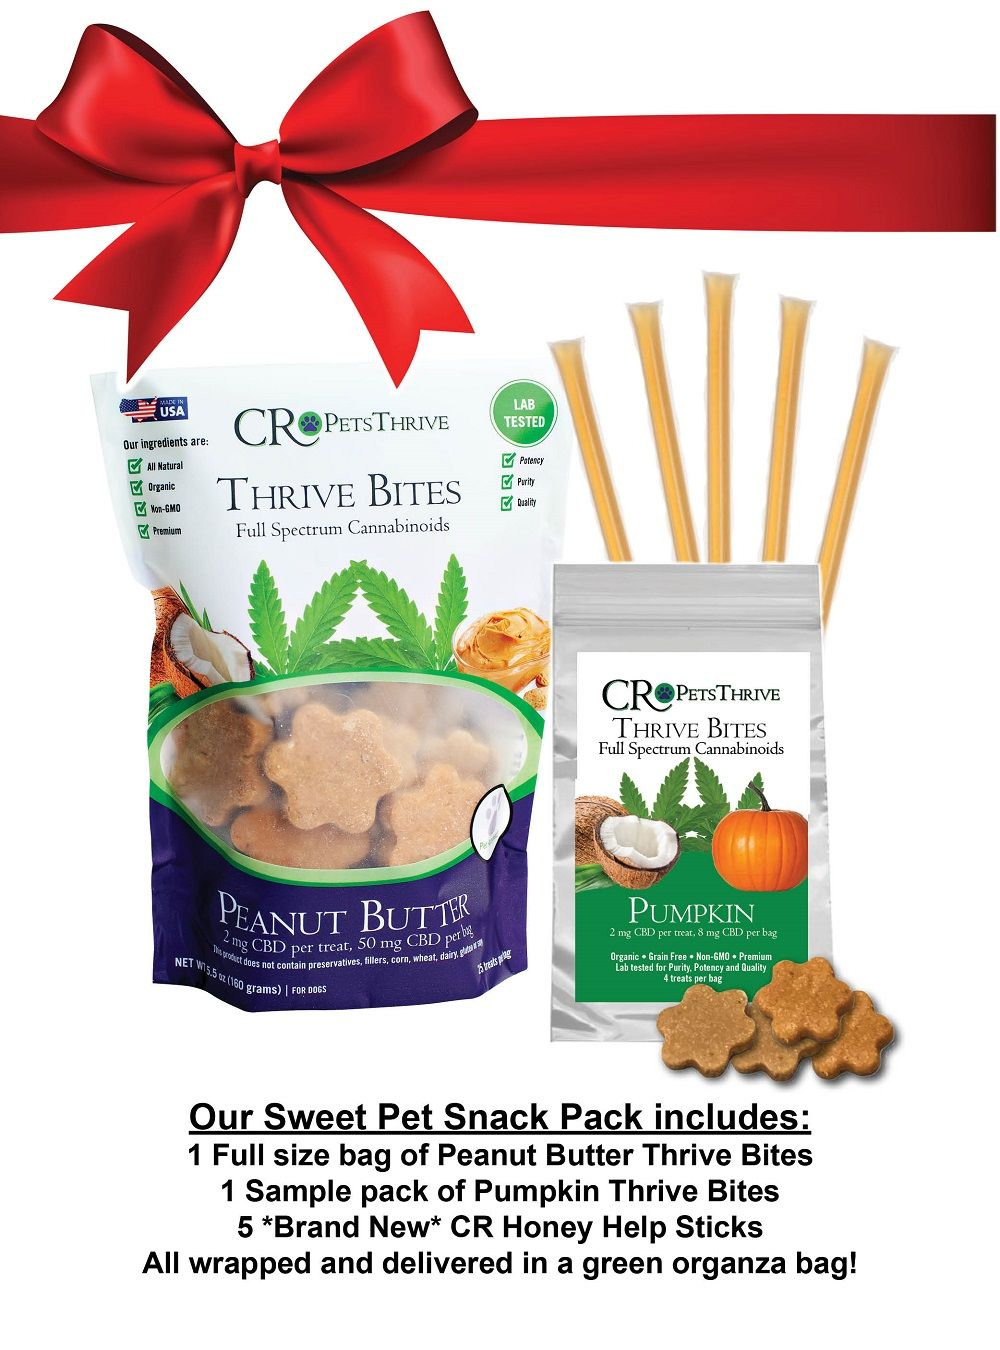 AllNatural pet snack pack with peanut butter, pumpkin and